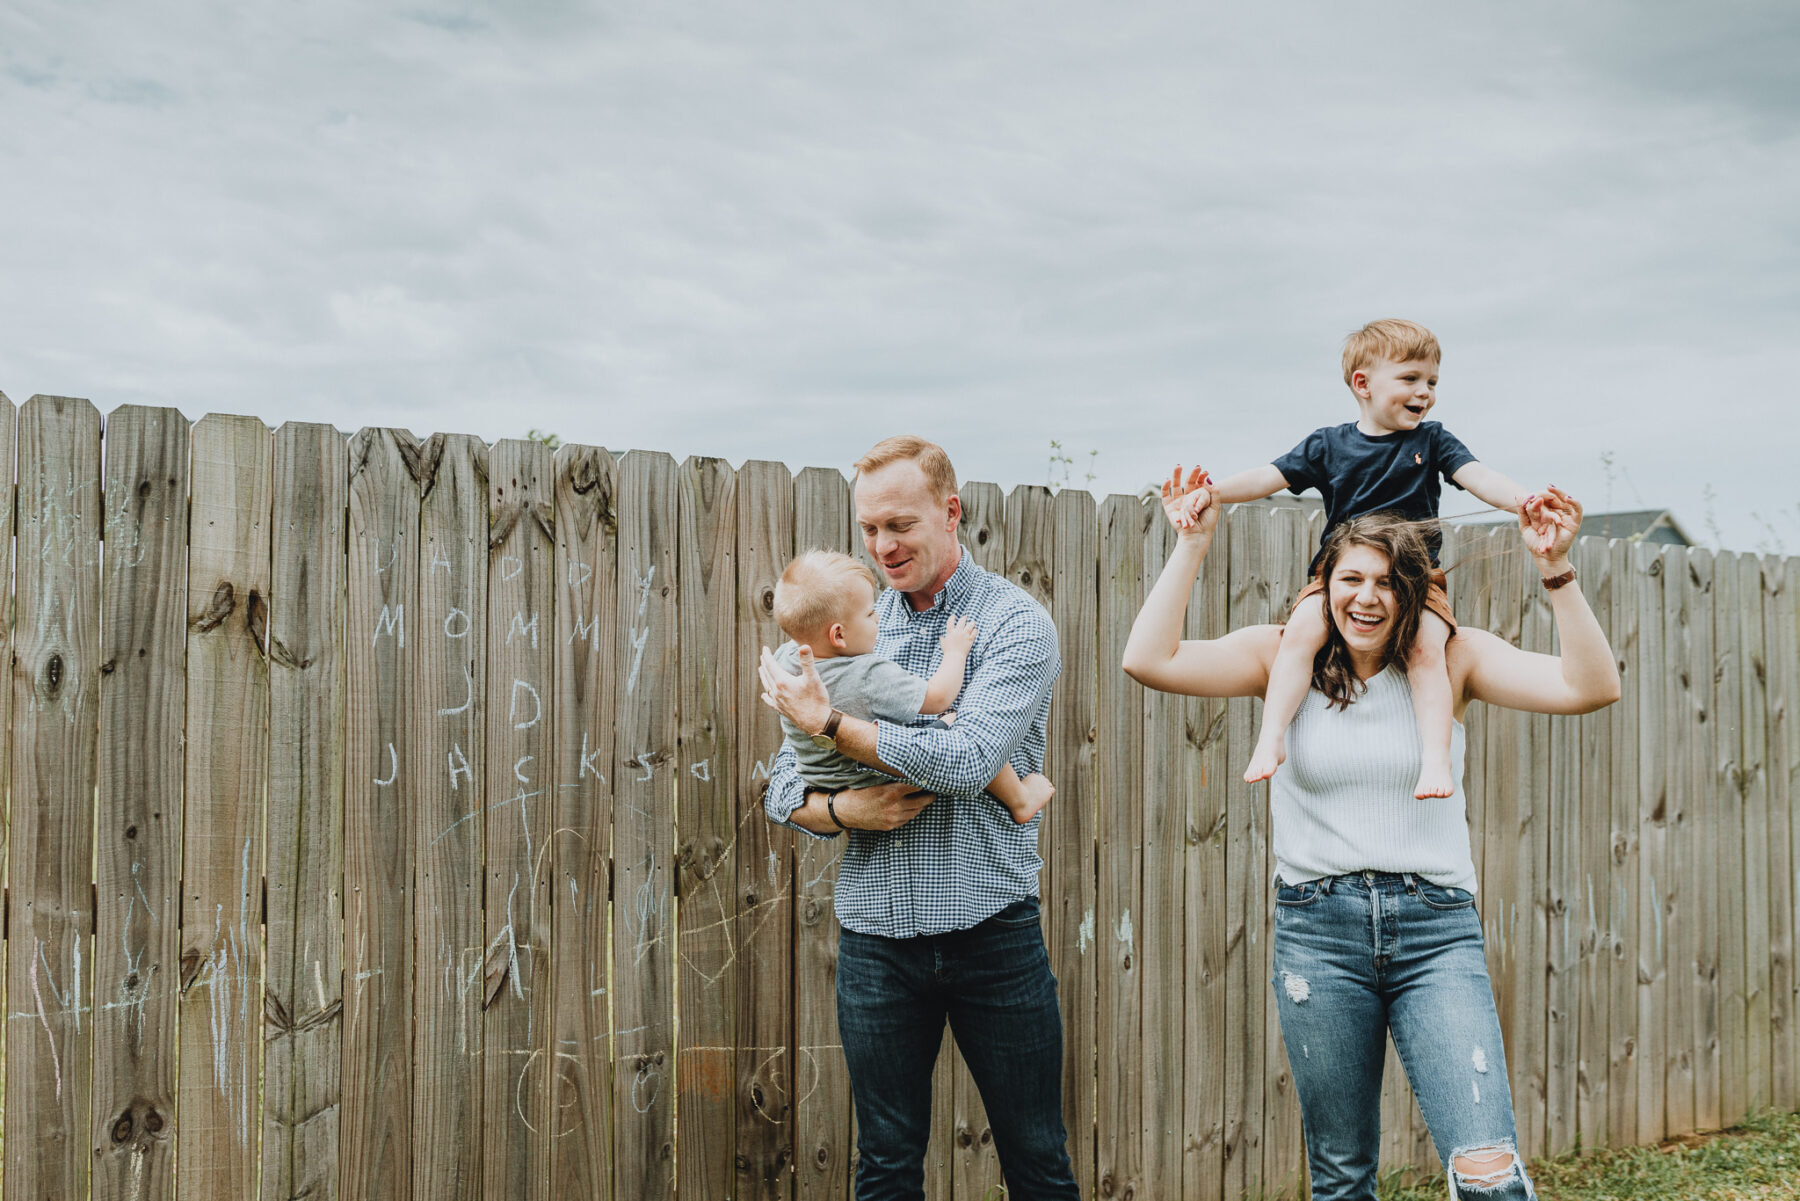 Outdoor family photography | Nashville Baby Guide